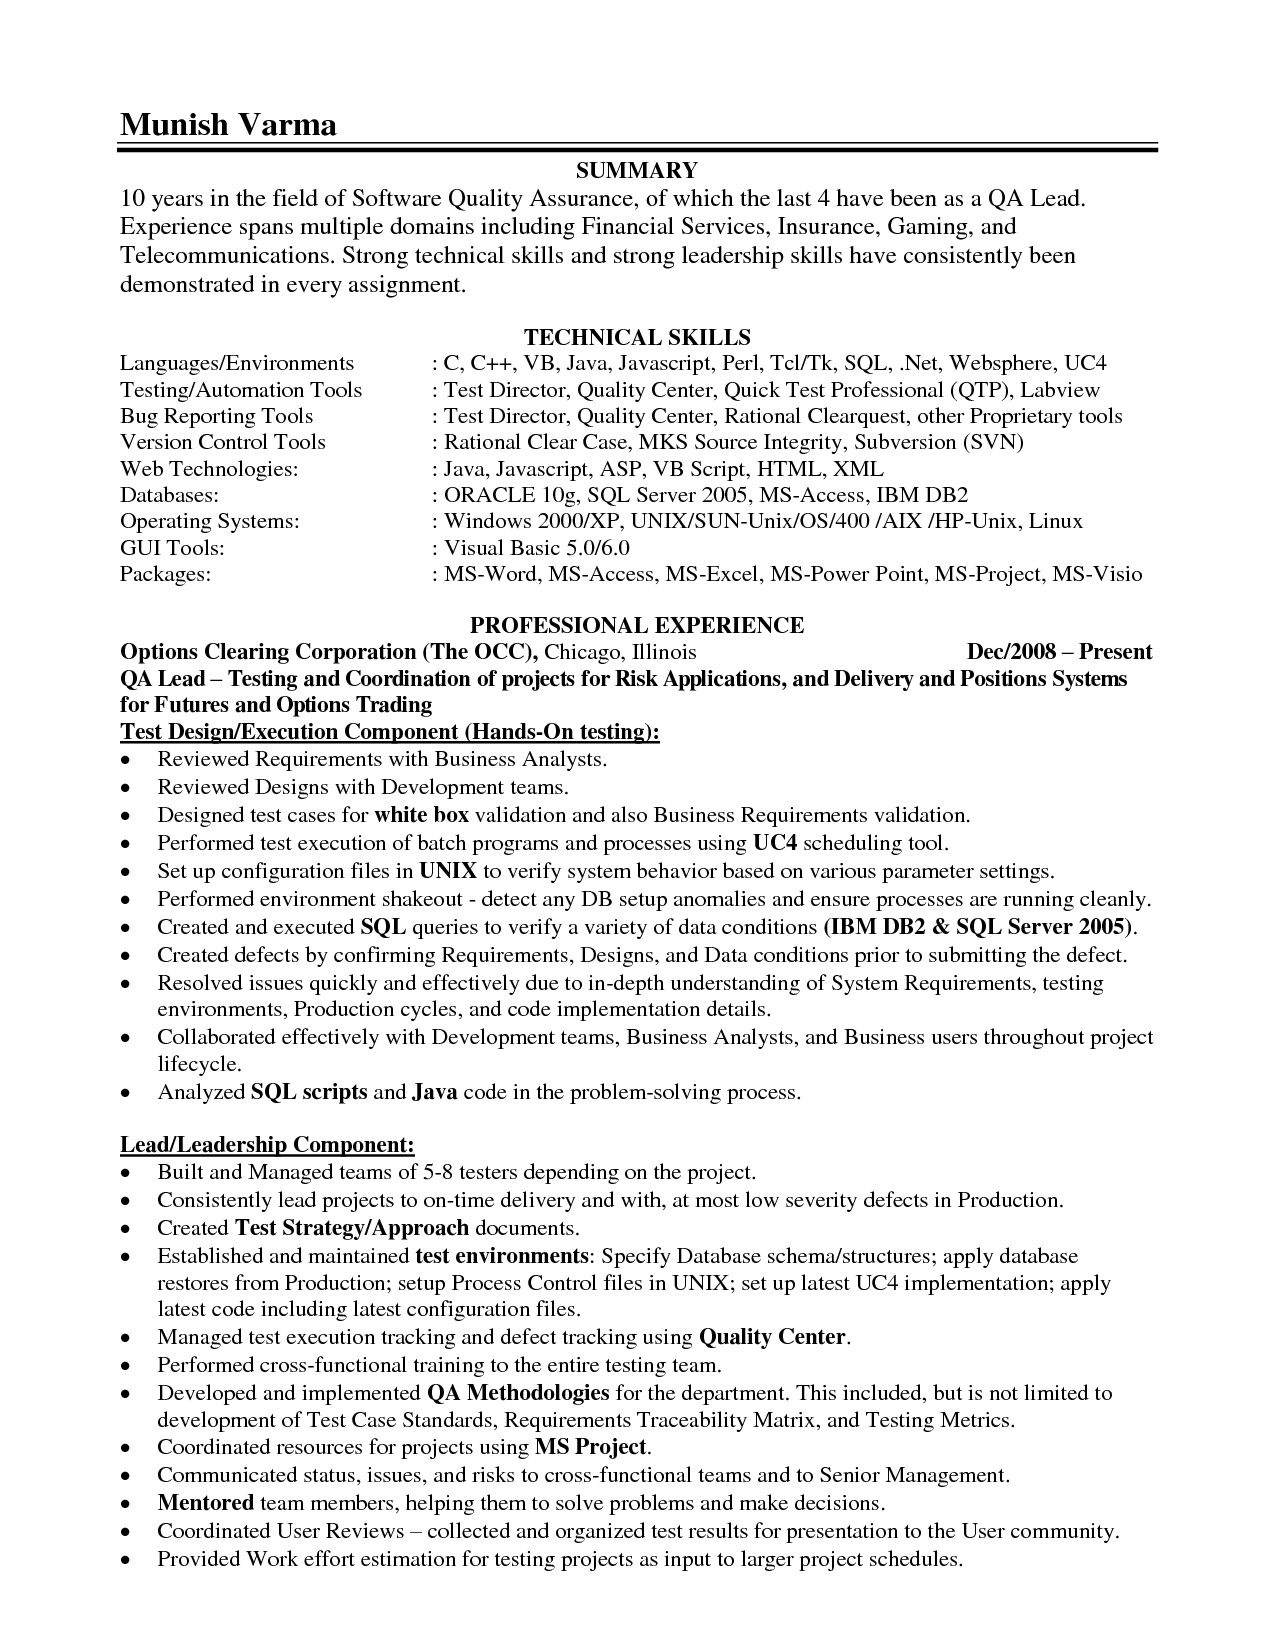 What should I write for communication skills on a resume